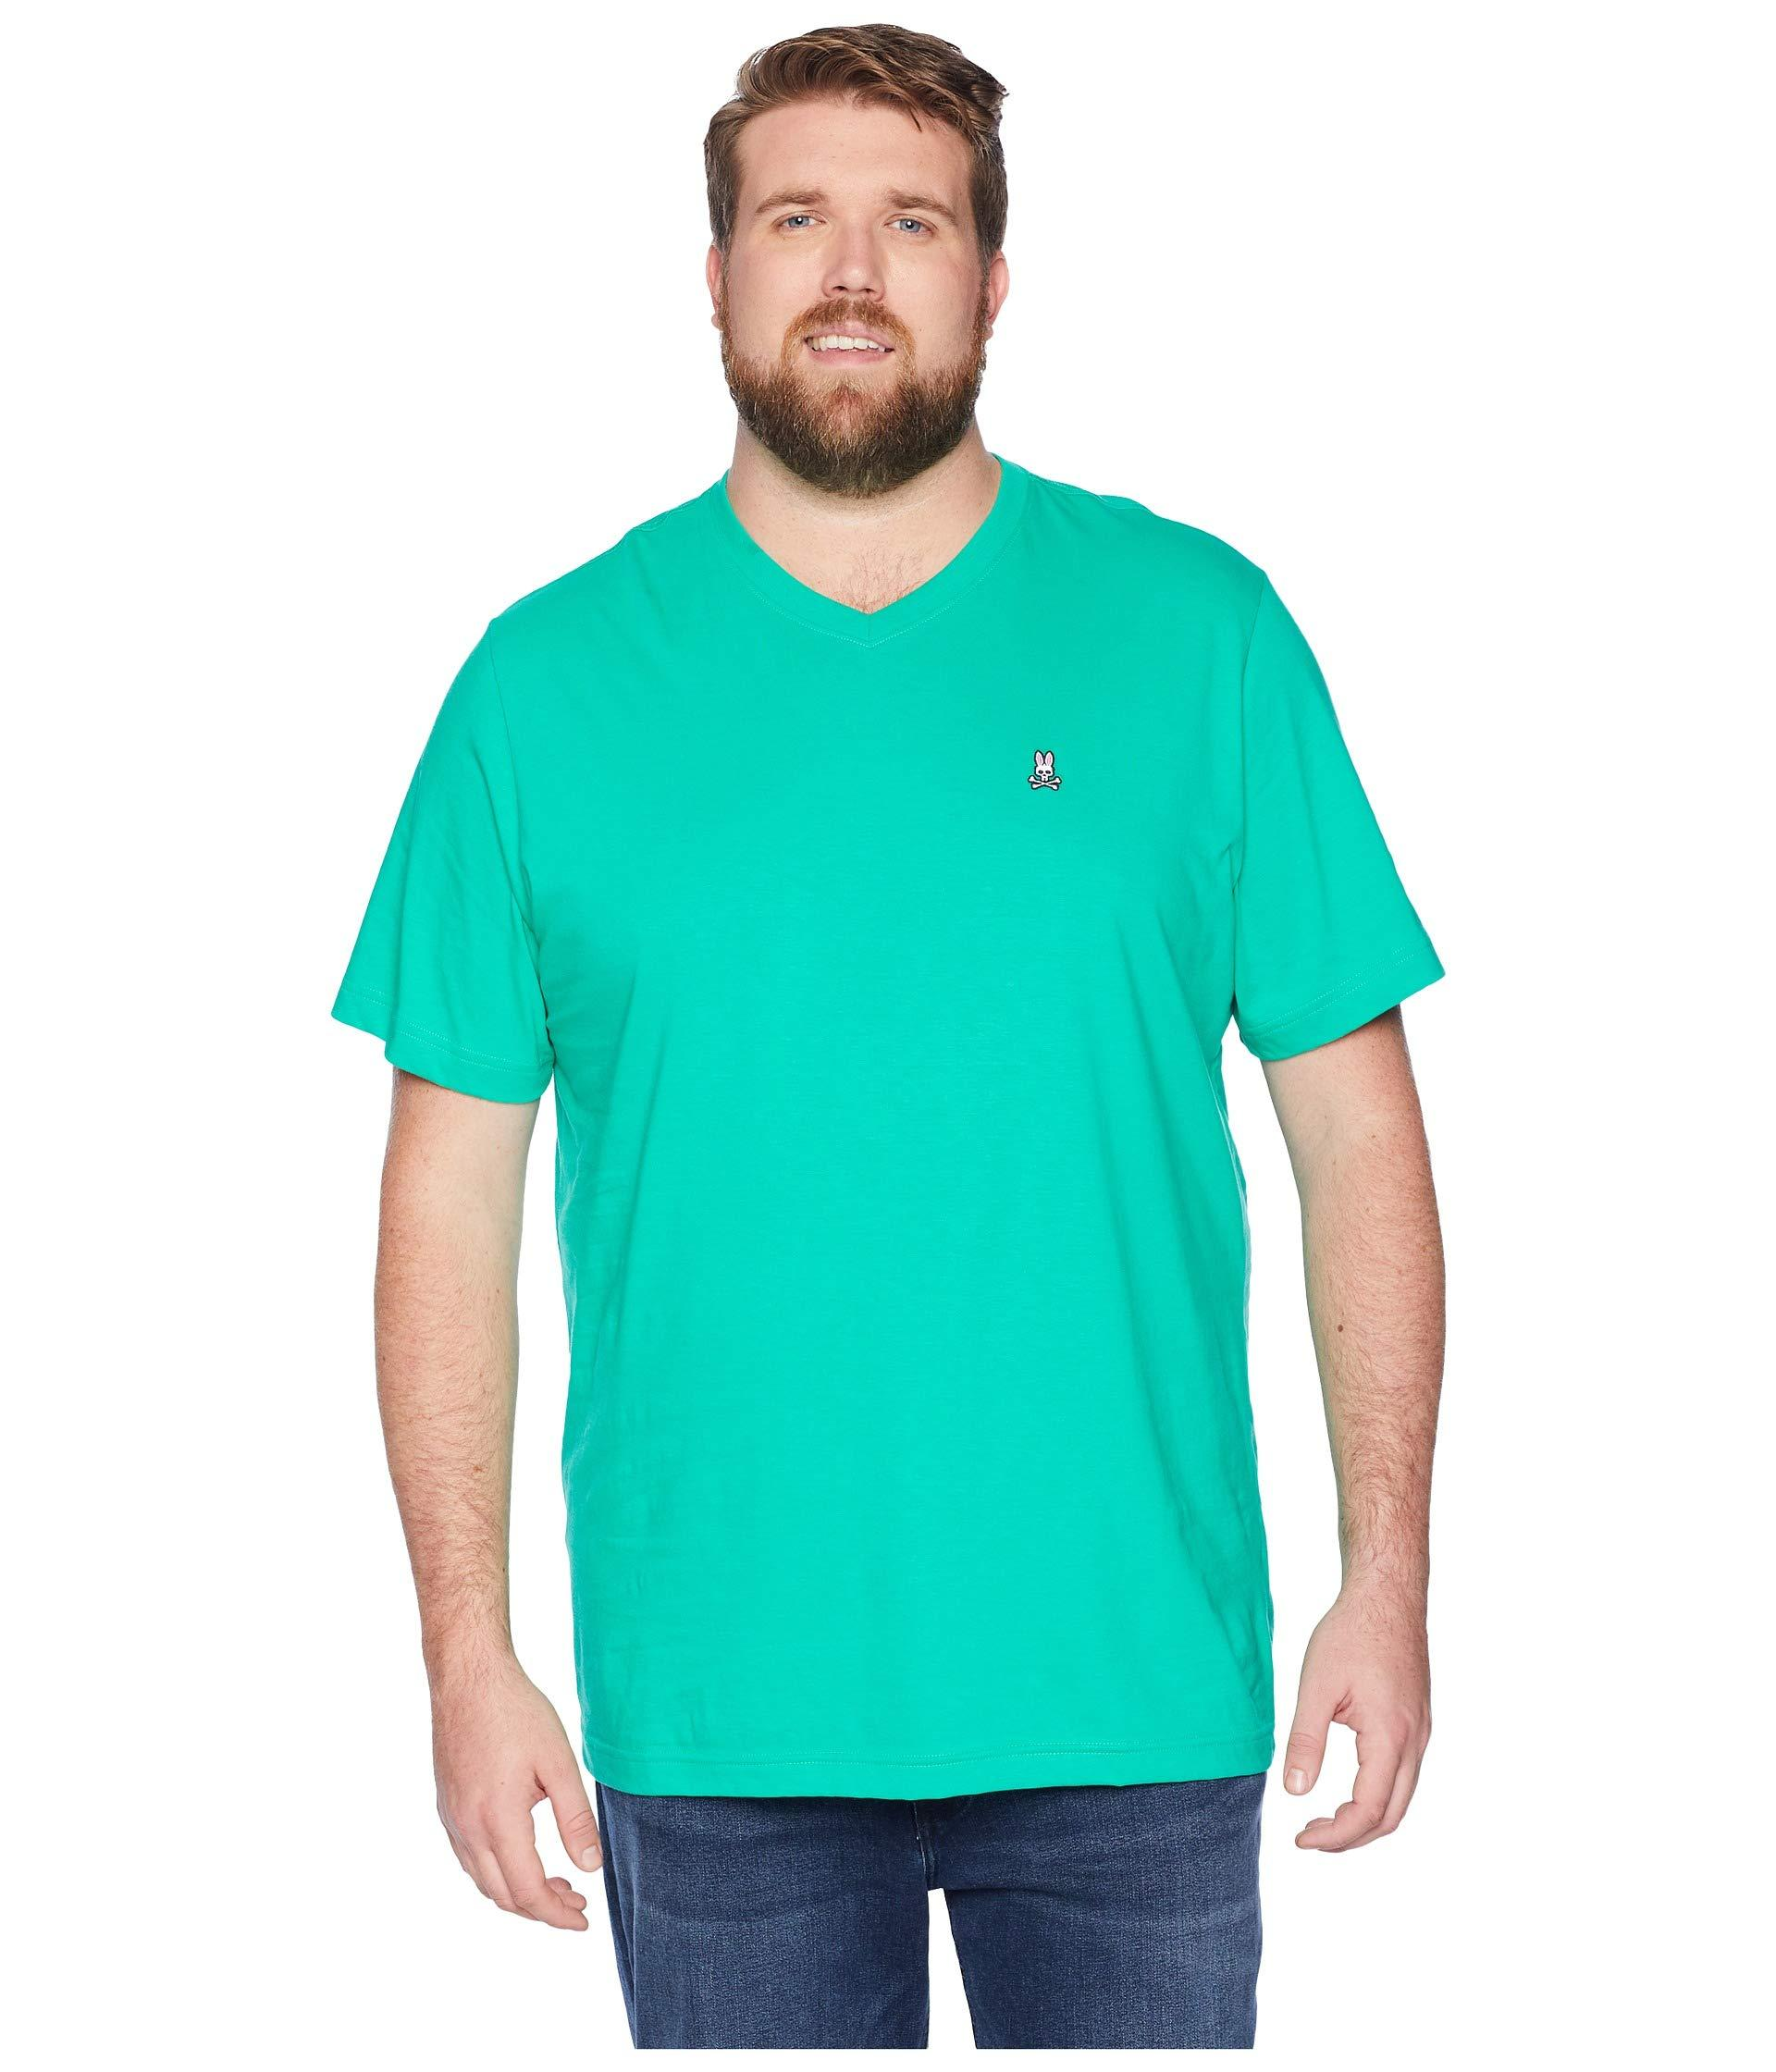 71b14151166 Lyst - Psycho Bunny Big And Tall V-neck T-shirt in Green for Men ...